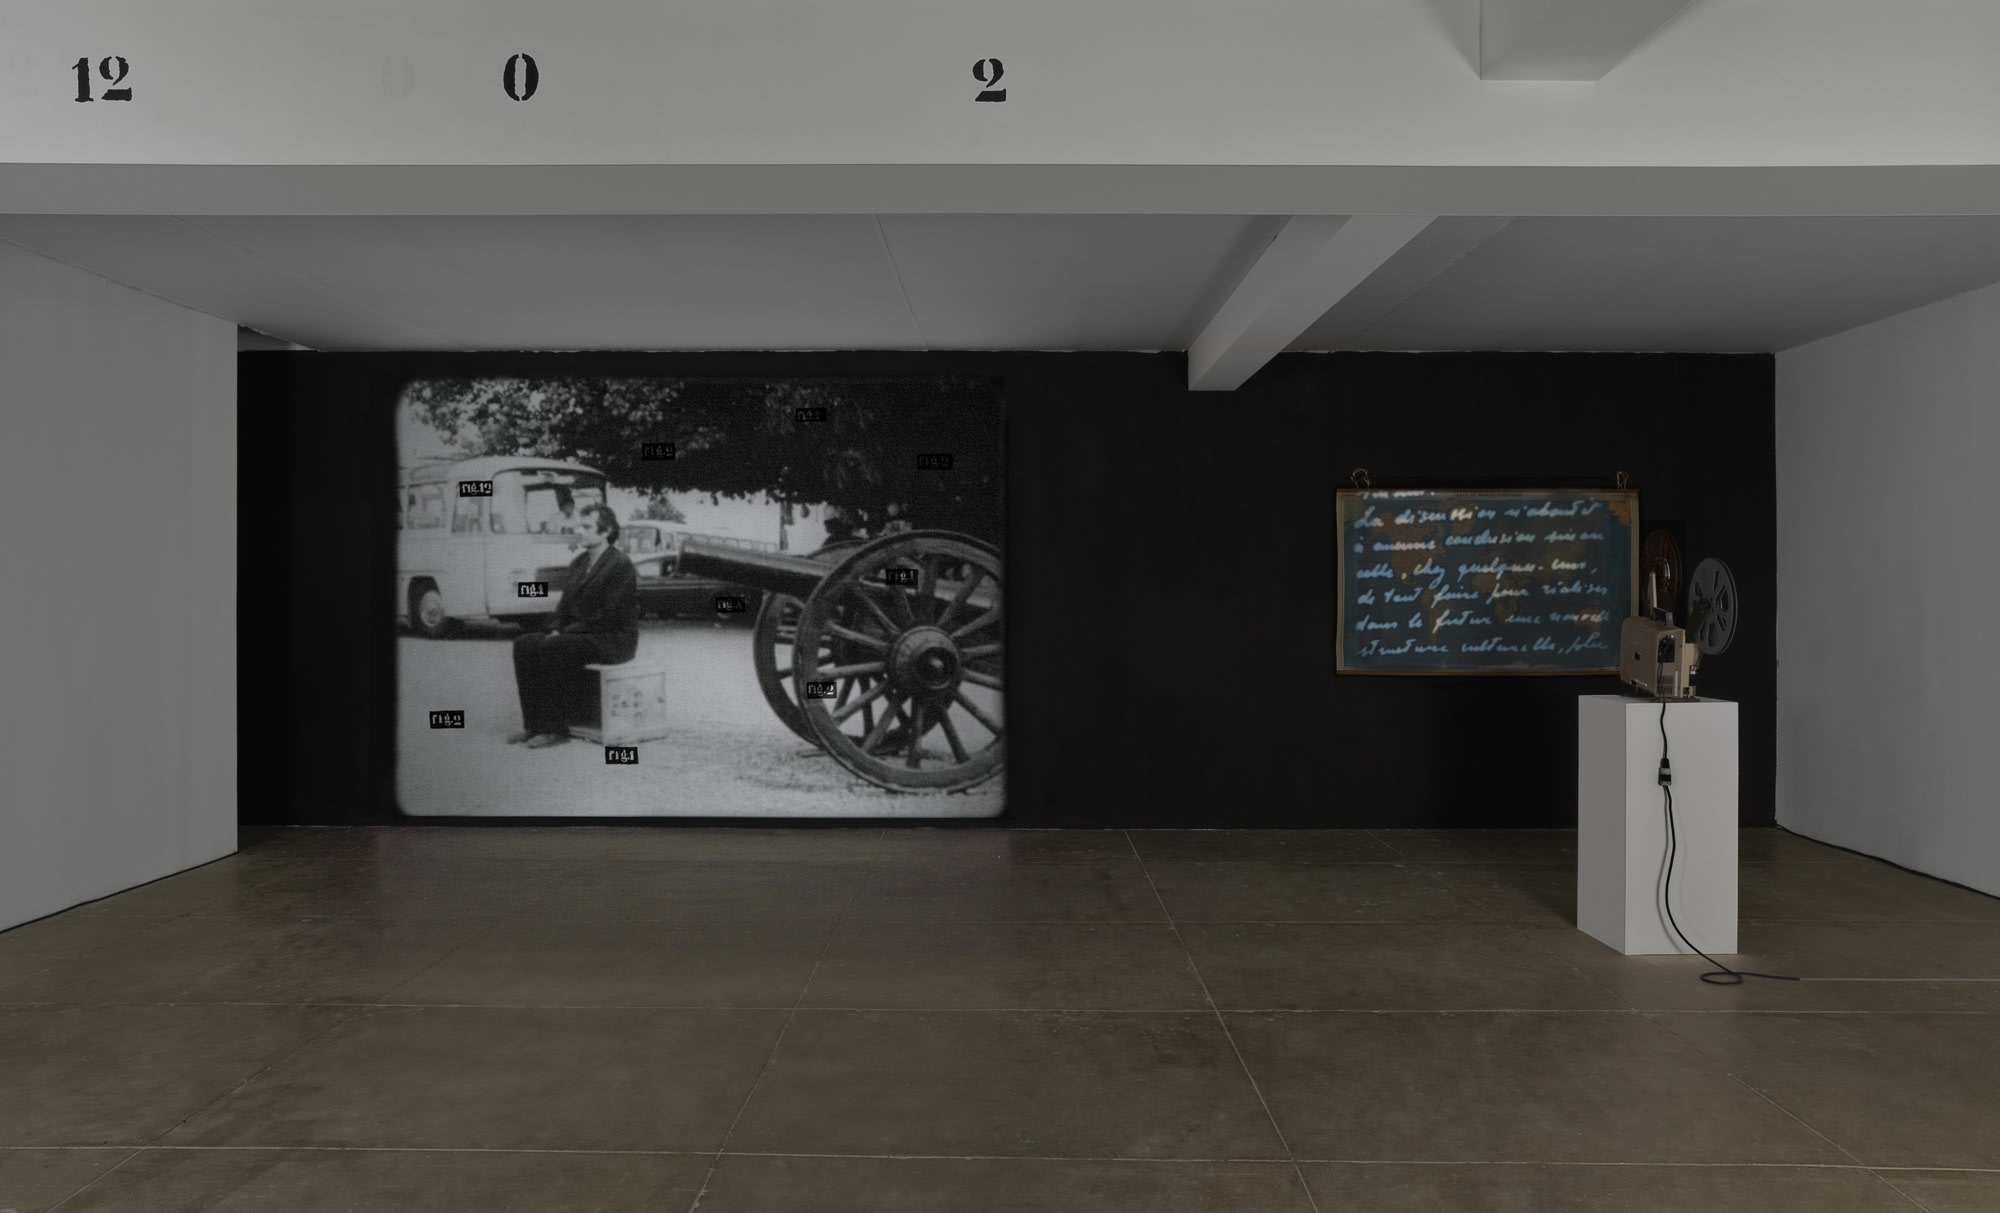 In a dark room, two projections run: one shows french cursive text, the other shows a man sitting in front of a cannon, which points directly at his head. On a beam on the ceiling of the room, texts reads: 12 0 2